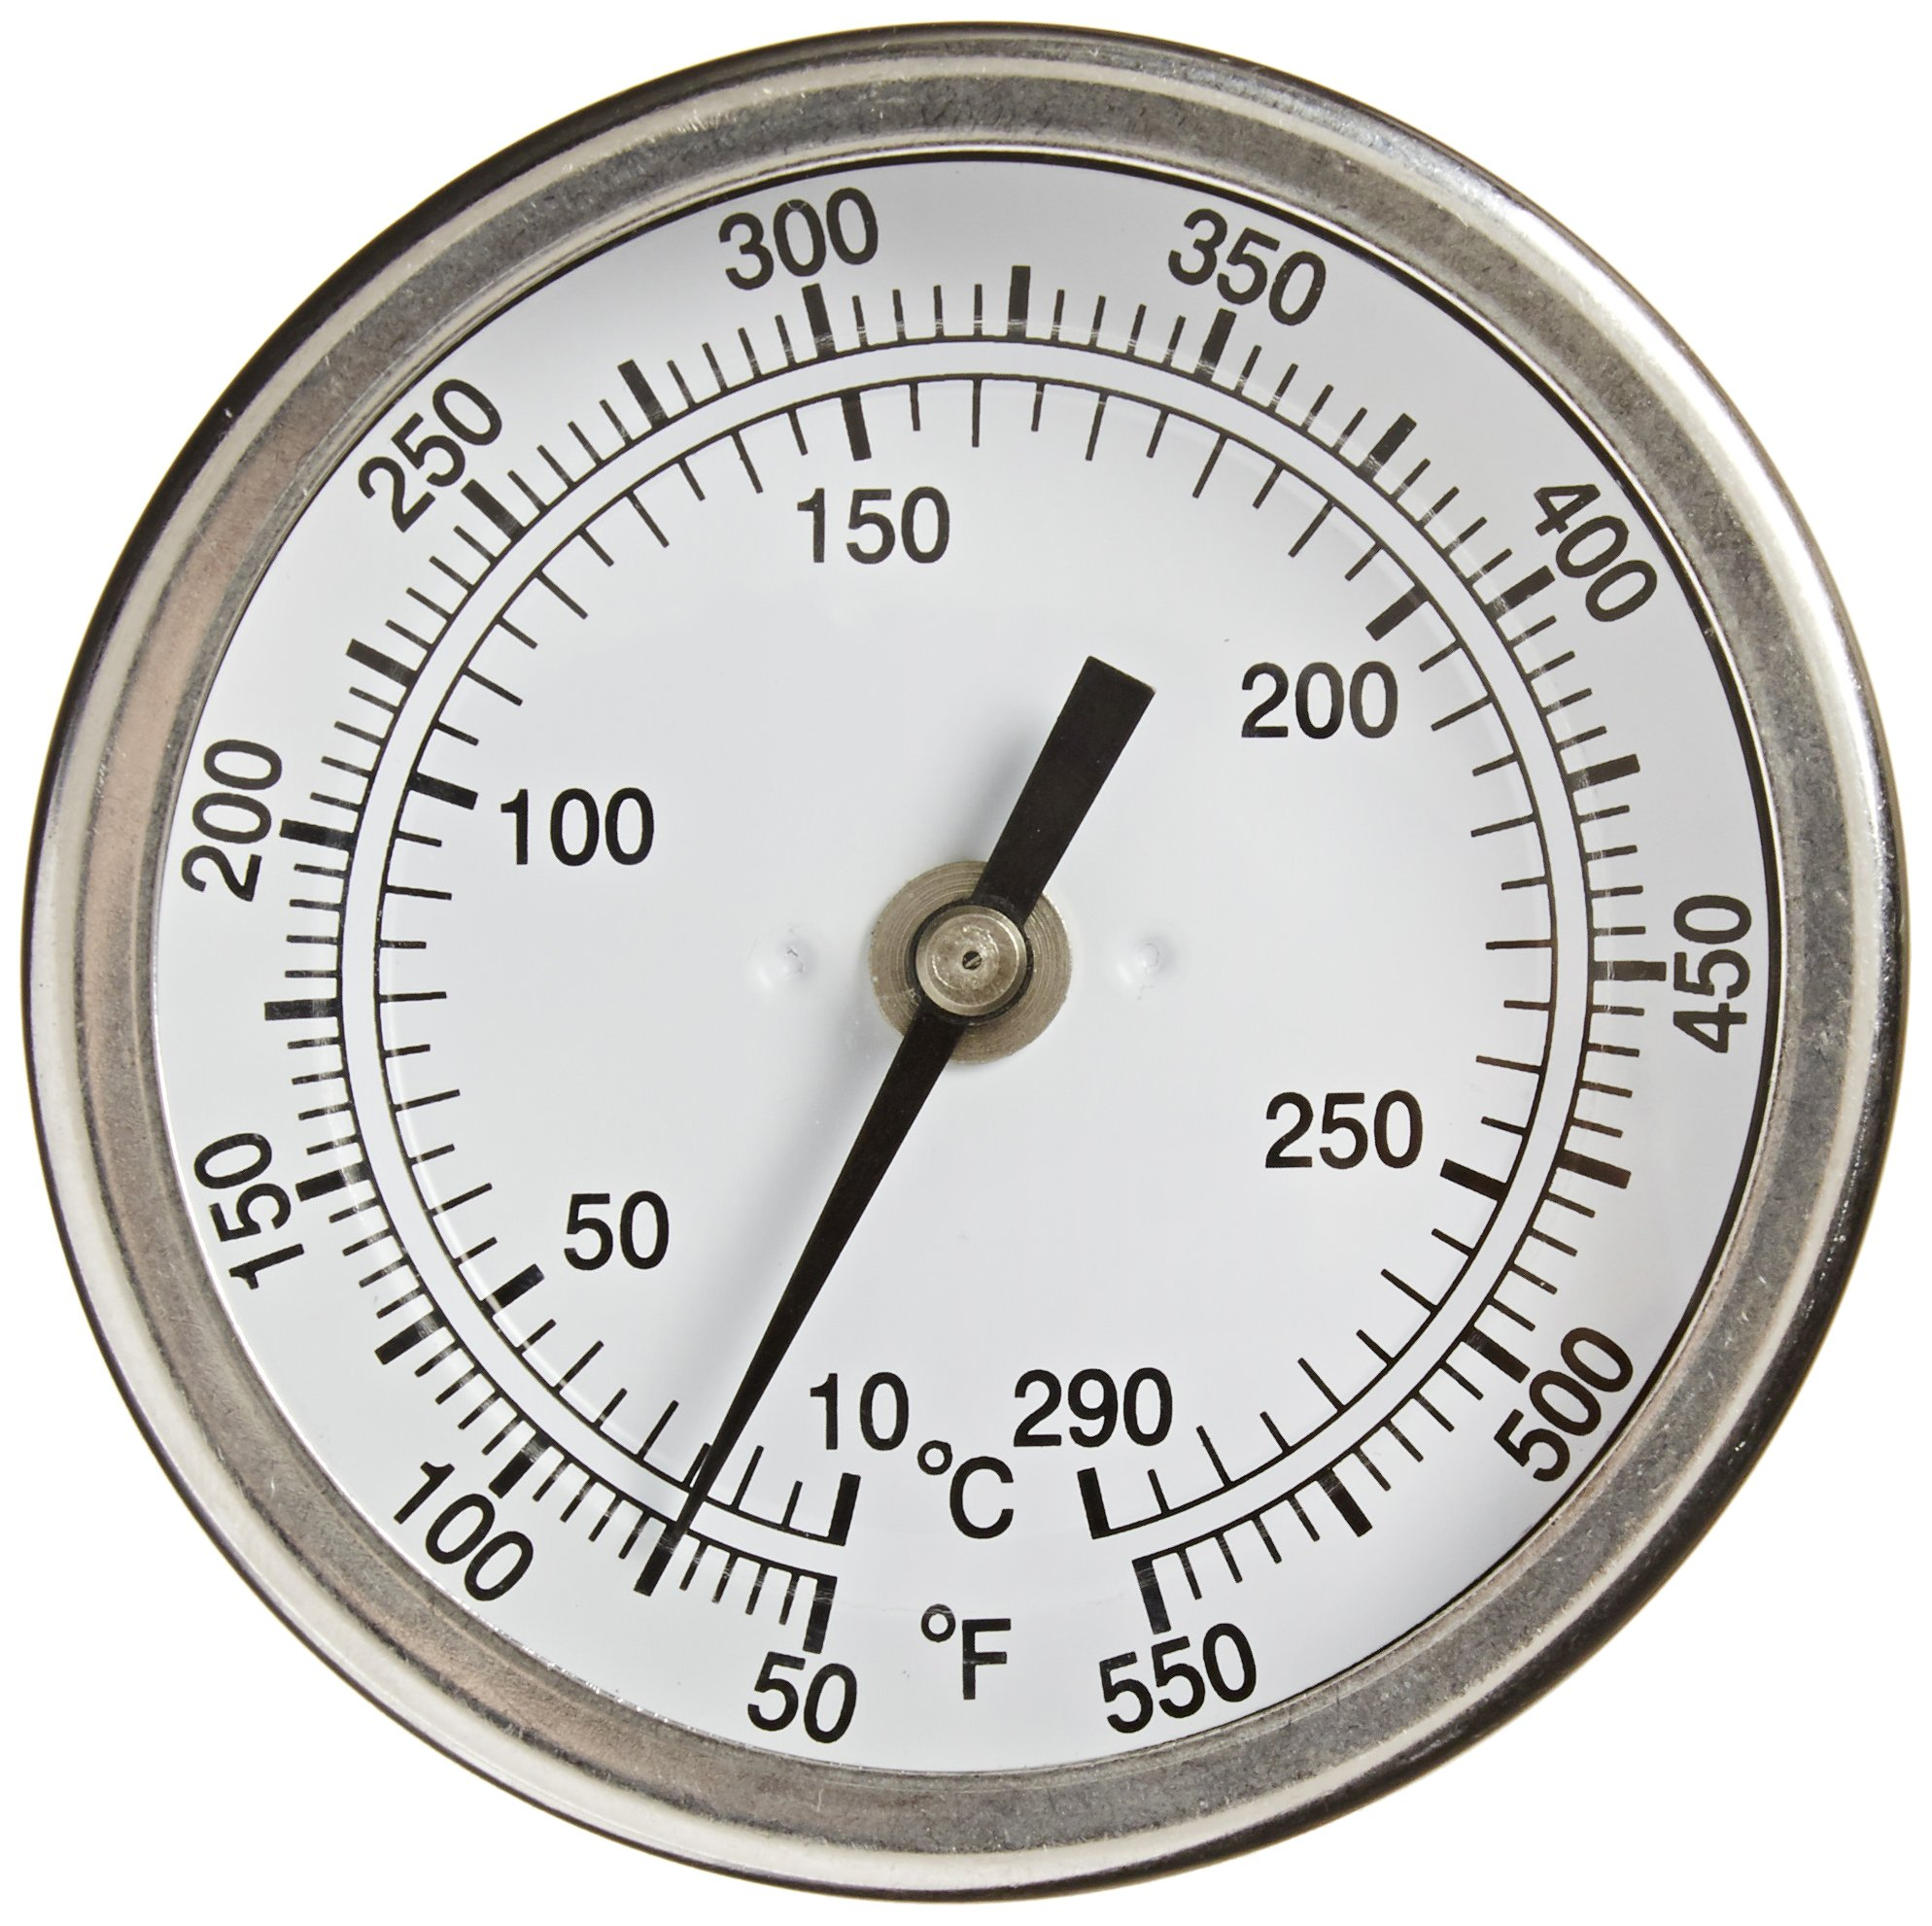 """PIC Gauge B3B4-RR 3"""" Dial Size, 50/550°F and 10/288°C, 4'' Stem Length, Back Angle Connection, Stainless Steel Case, 316 Stainless Steel Stem Bimetal Thermometer"""